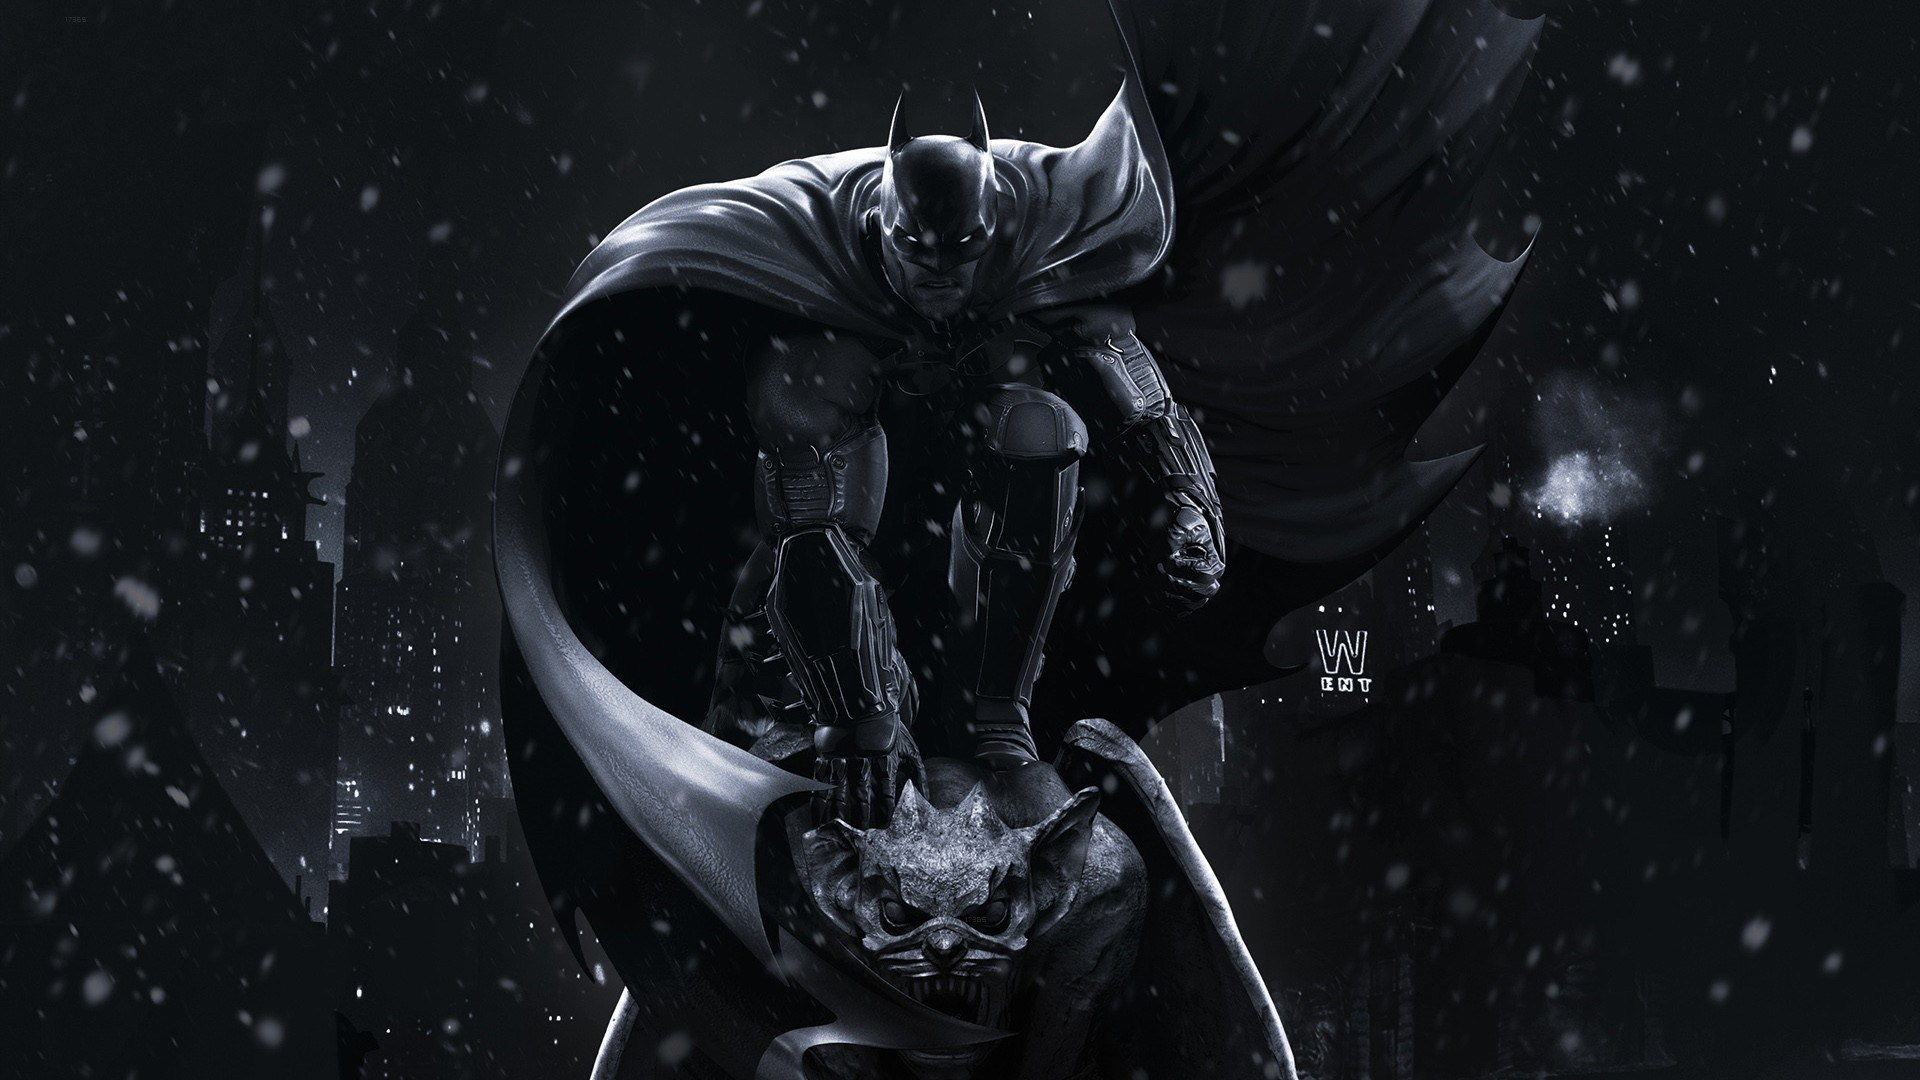 1920x1080-High-Resolution-batman-arkham-origins-wallpaper-wpc900879